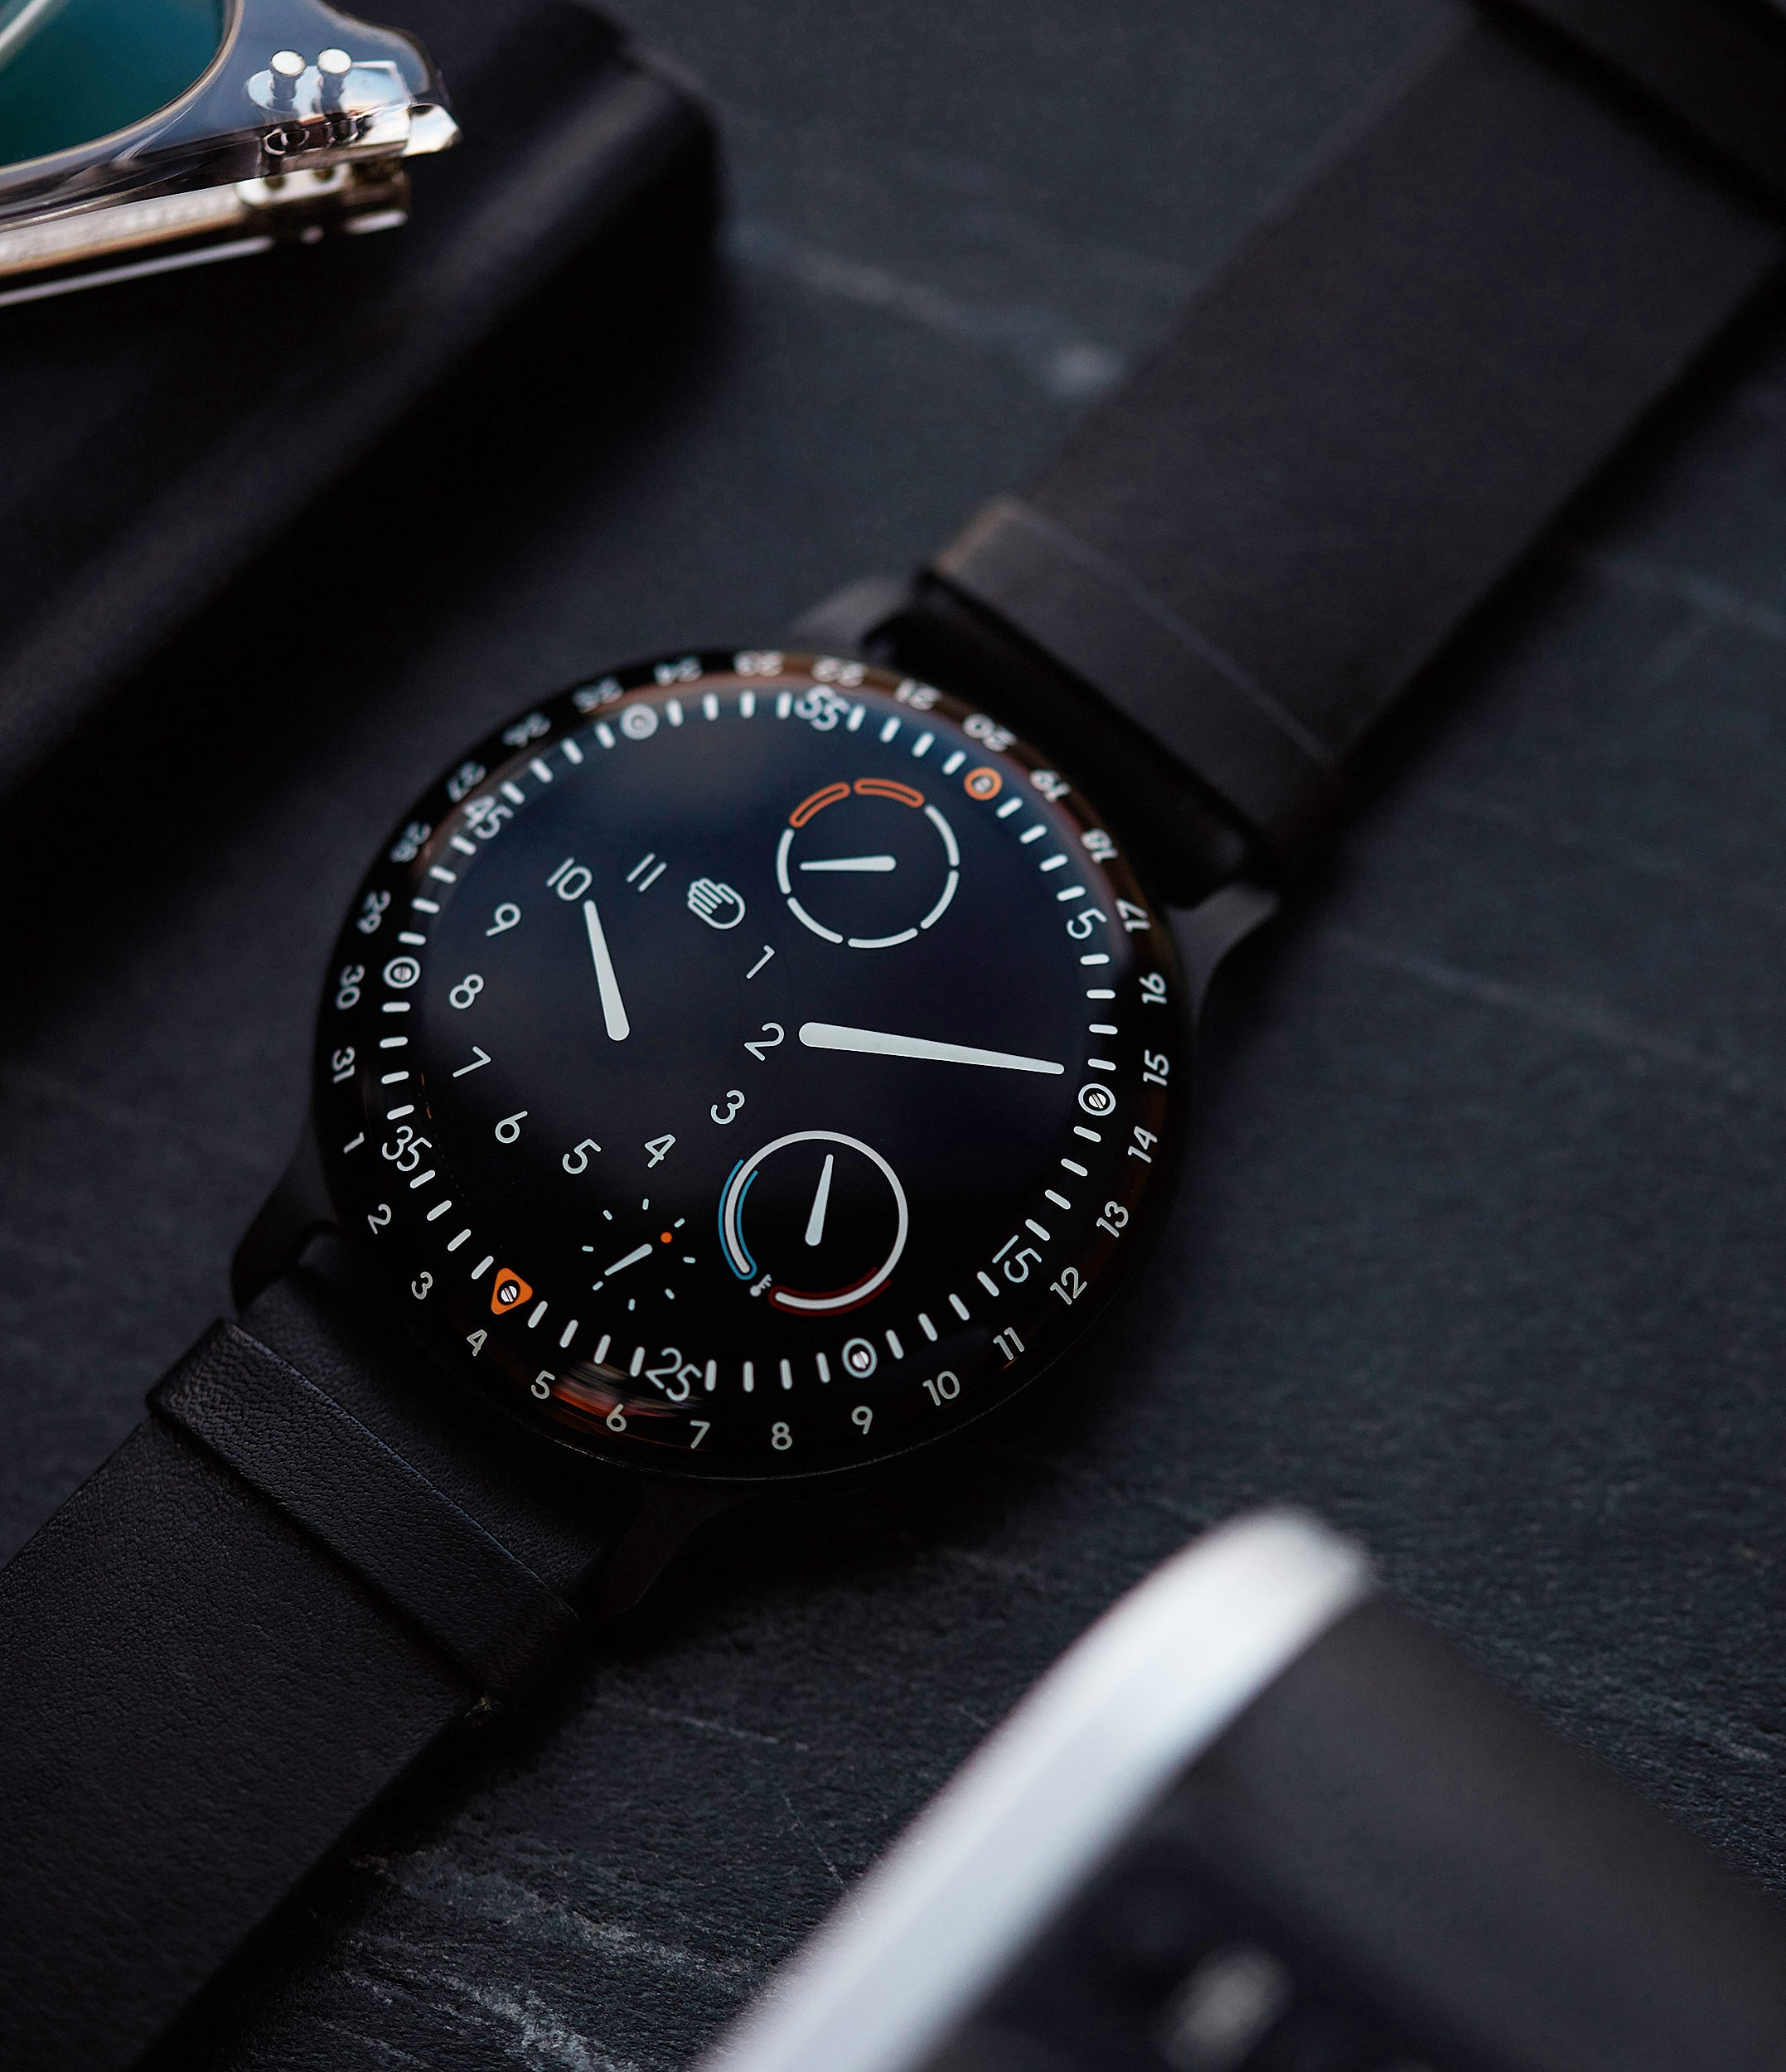 The Ressence Type 3 features both a highly unusual display and an almost unique construction. Available online at A Collected Man London